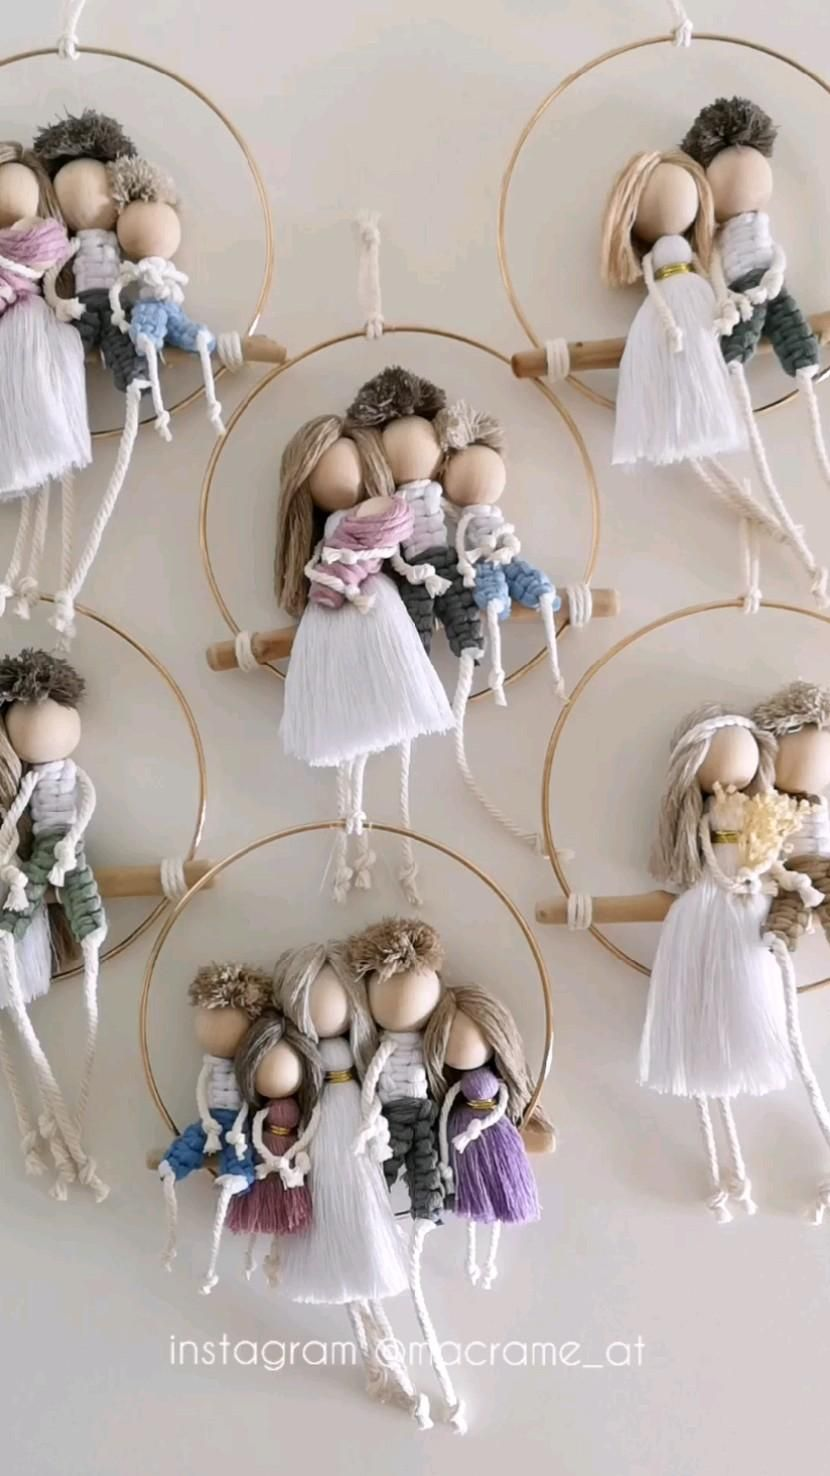 macrame families gift idea for your beloved